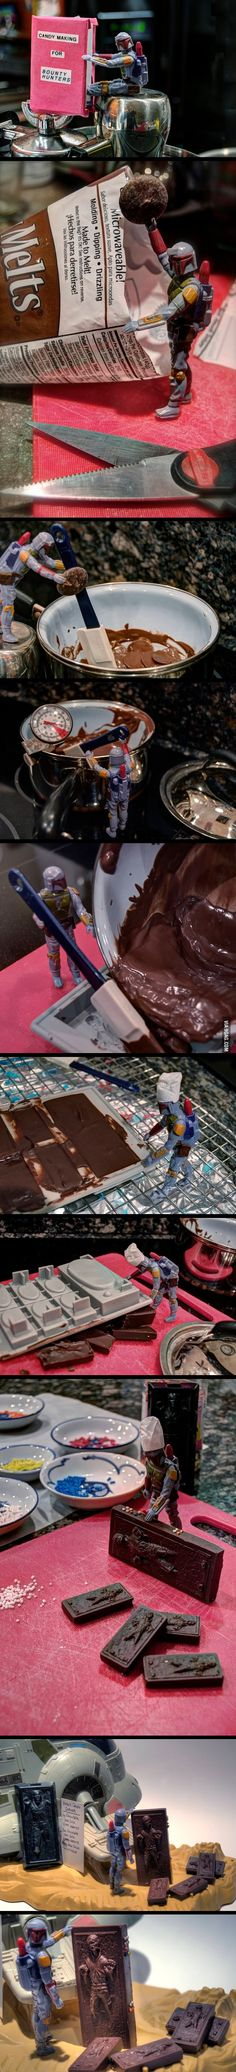 Boba Fett making chocolate Han Solos